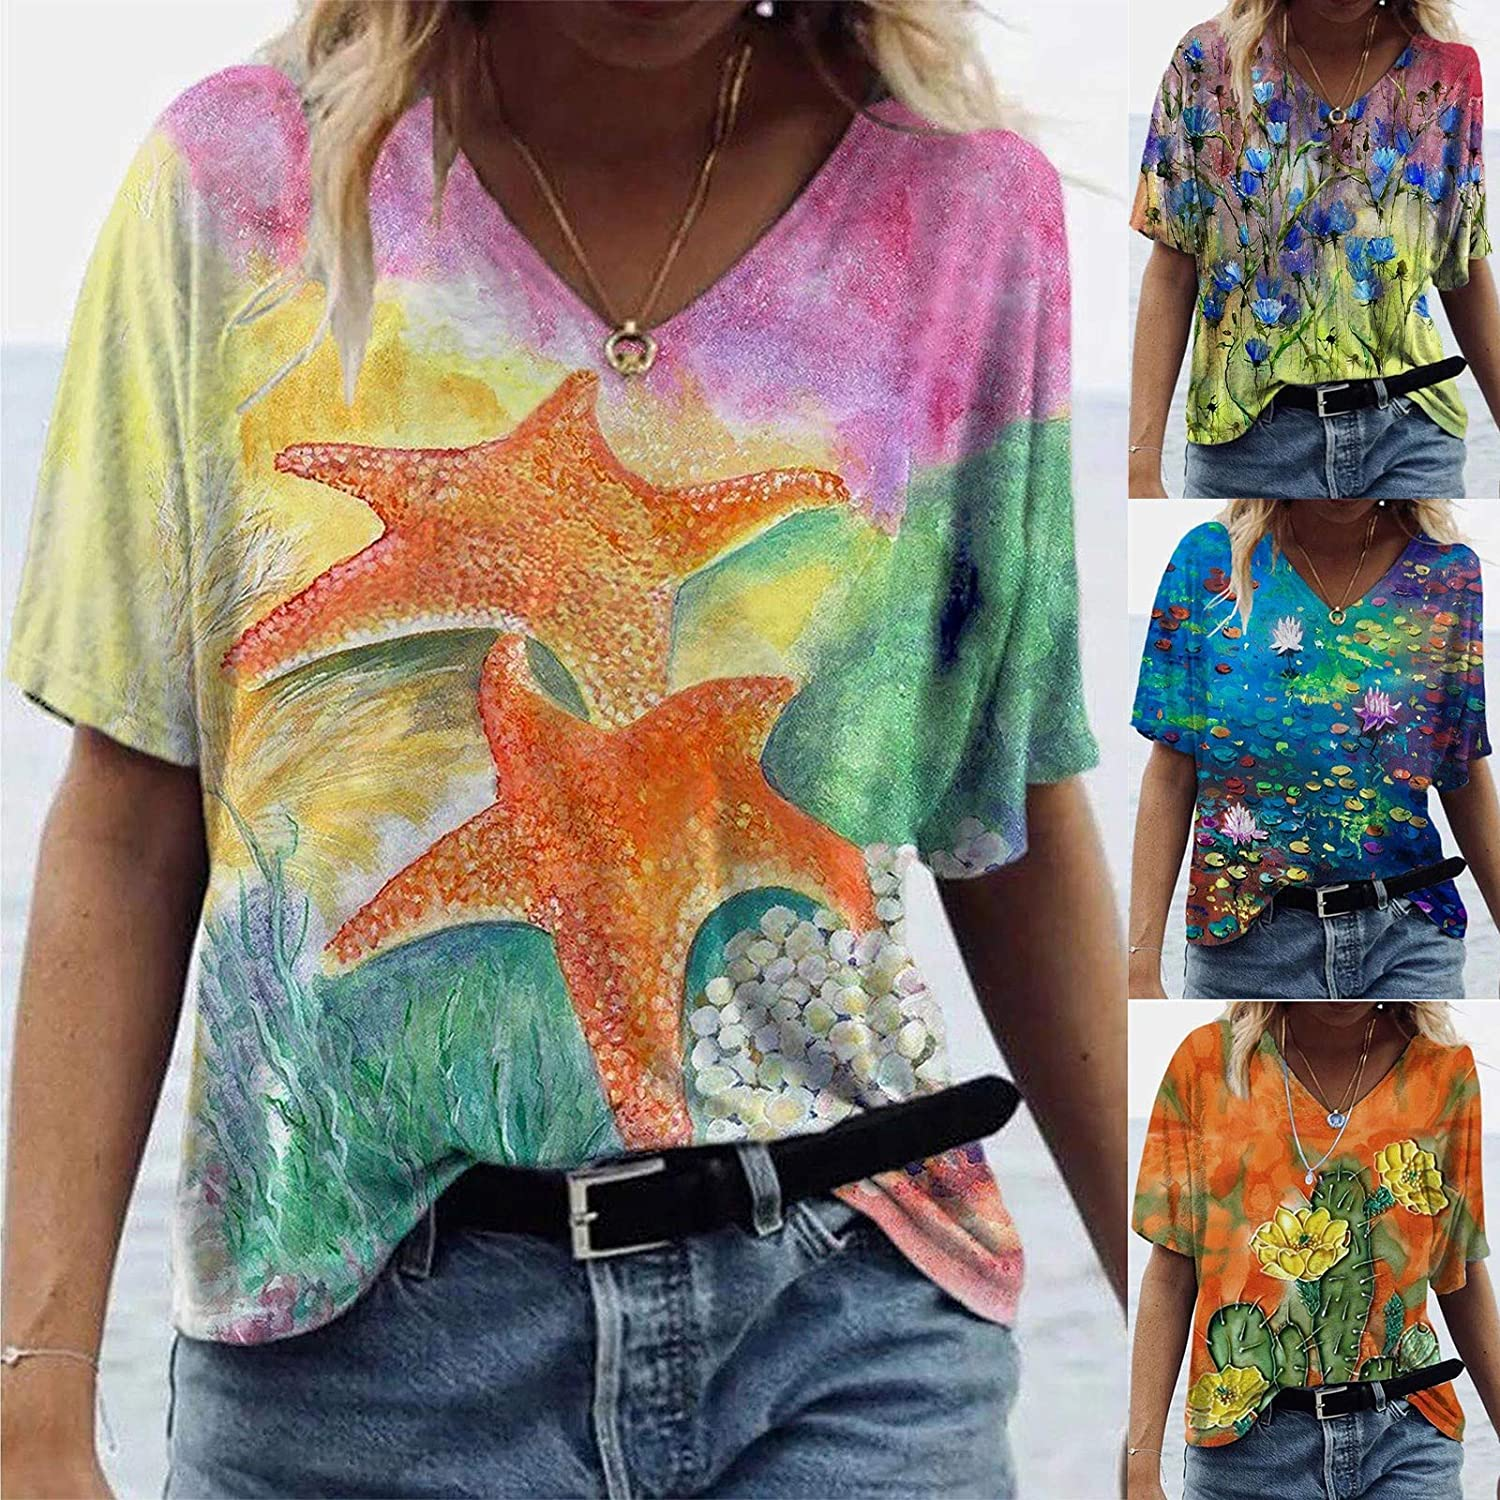 Women's Printed Short Sleeve Tops V-Neck Blouse Tees Casual Style Summer Tunic Tops V-Neck T-Shirt